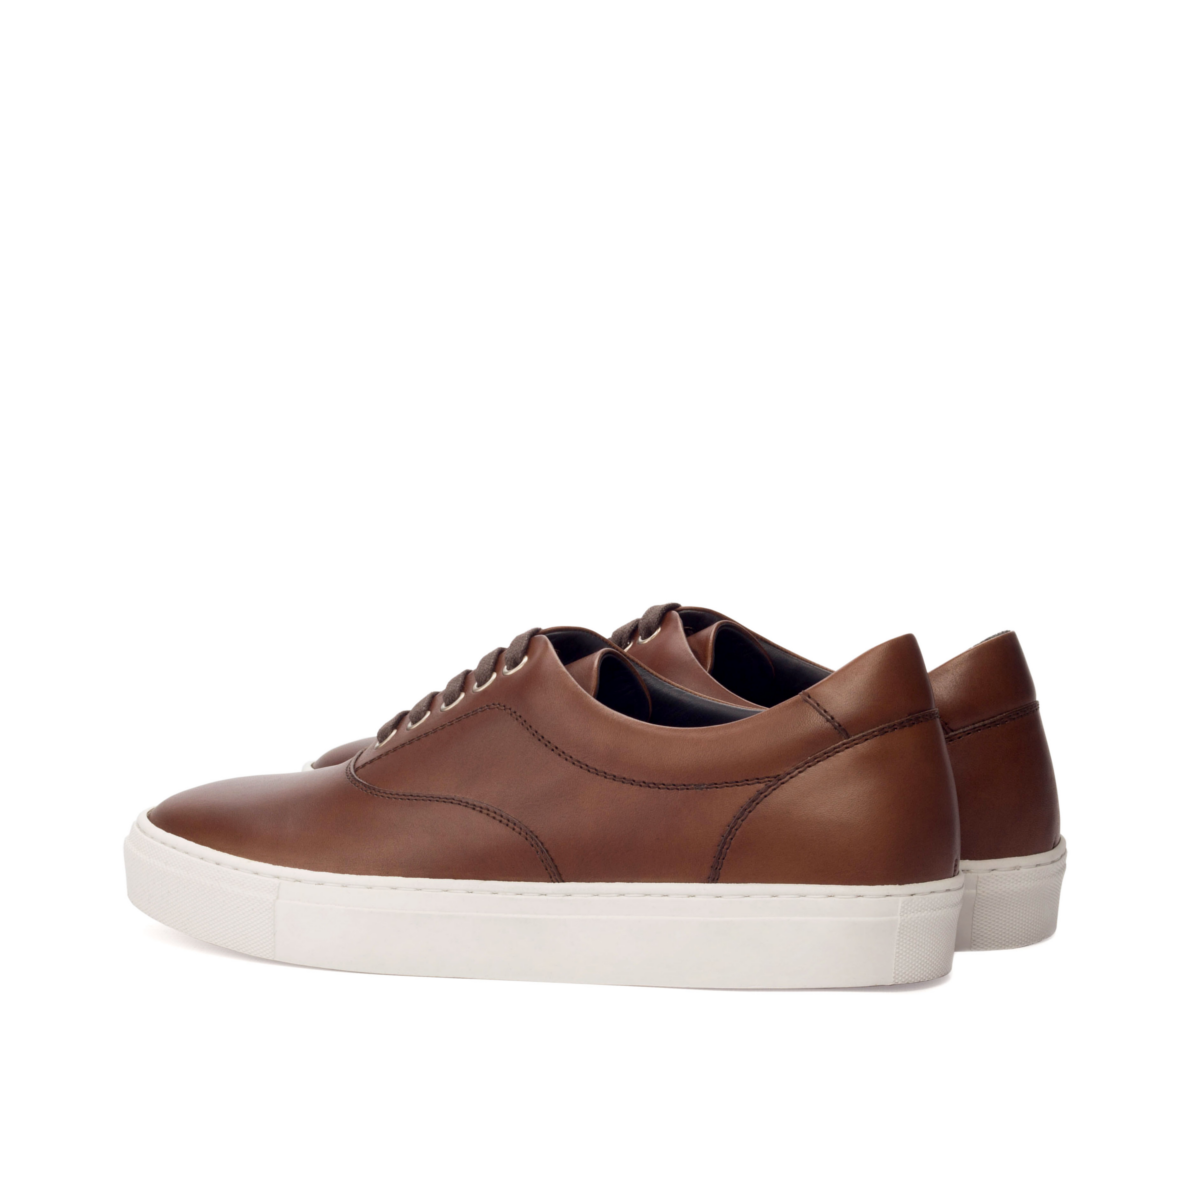 Brown boxcalf top sider sneakers